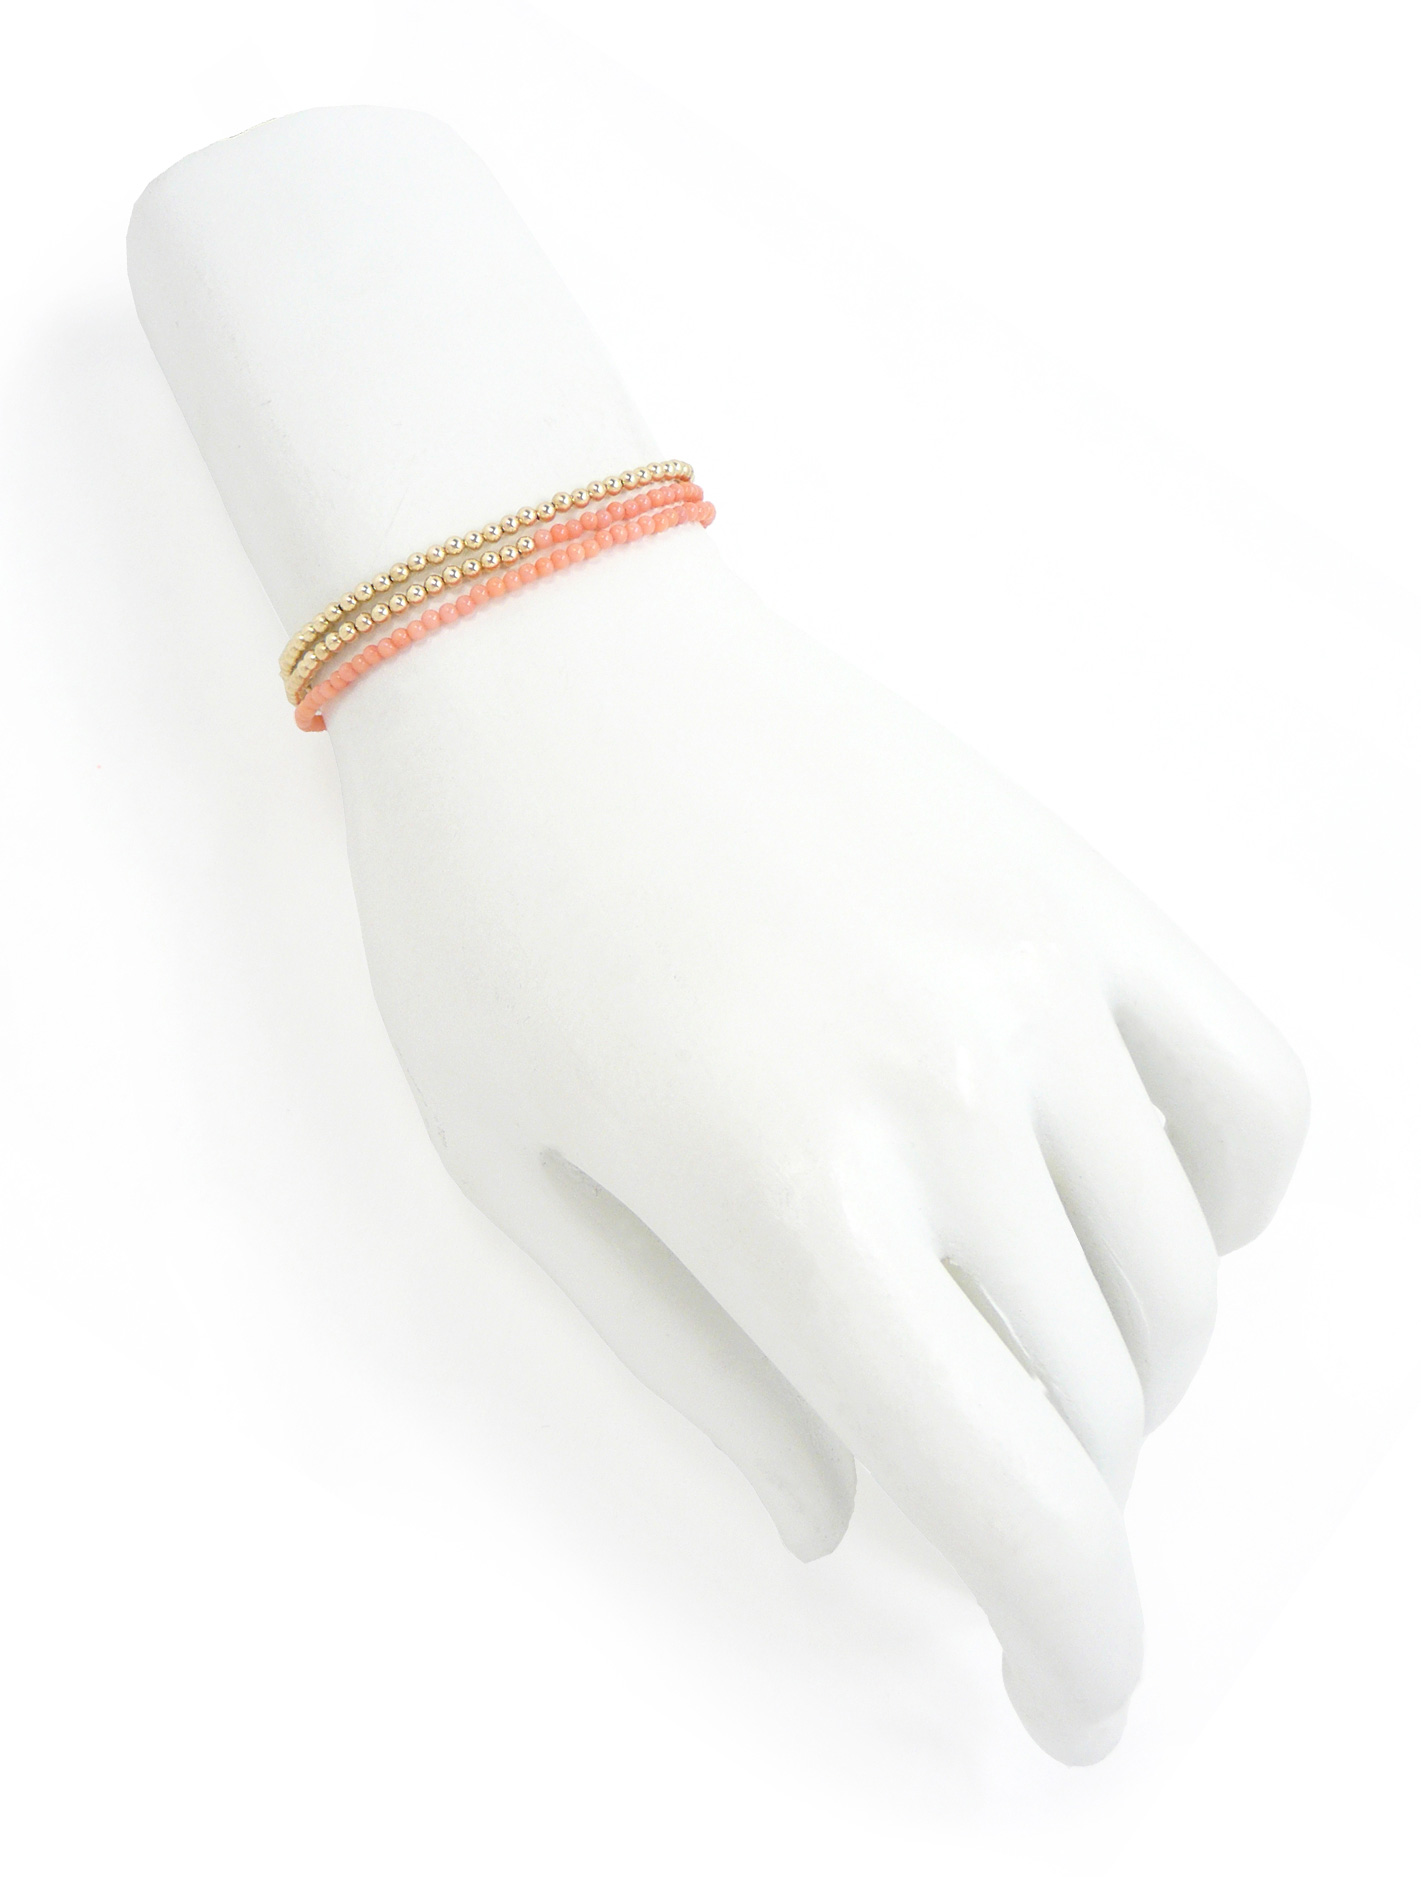 Delicate Pink Coral and Gold Bead Necklace Jewelry by Nektar De Stagni May also be worn as bracelet